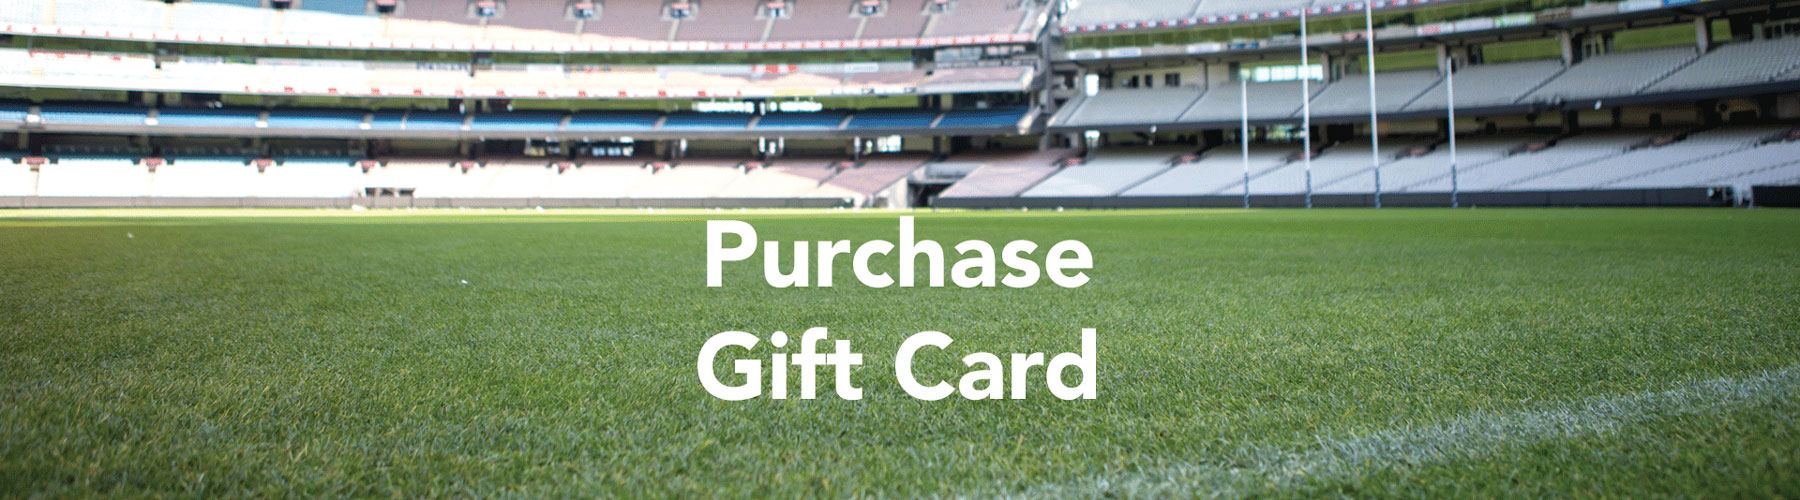 Purchase Gift Card Image